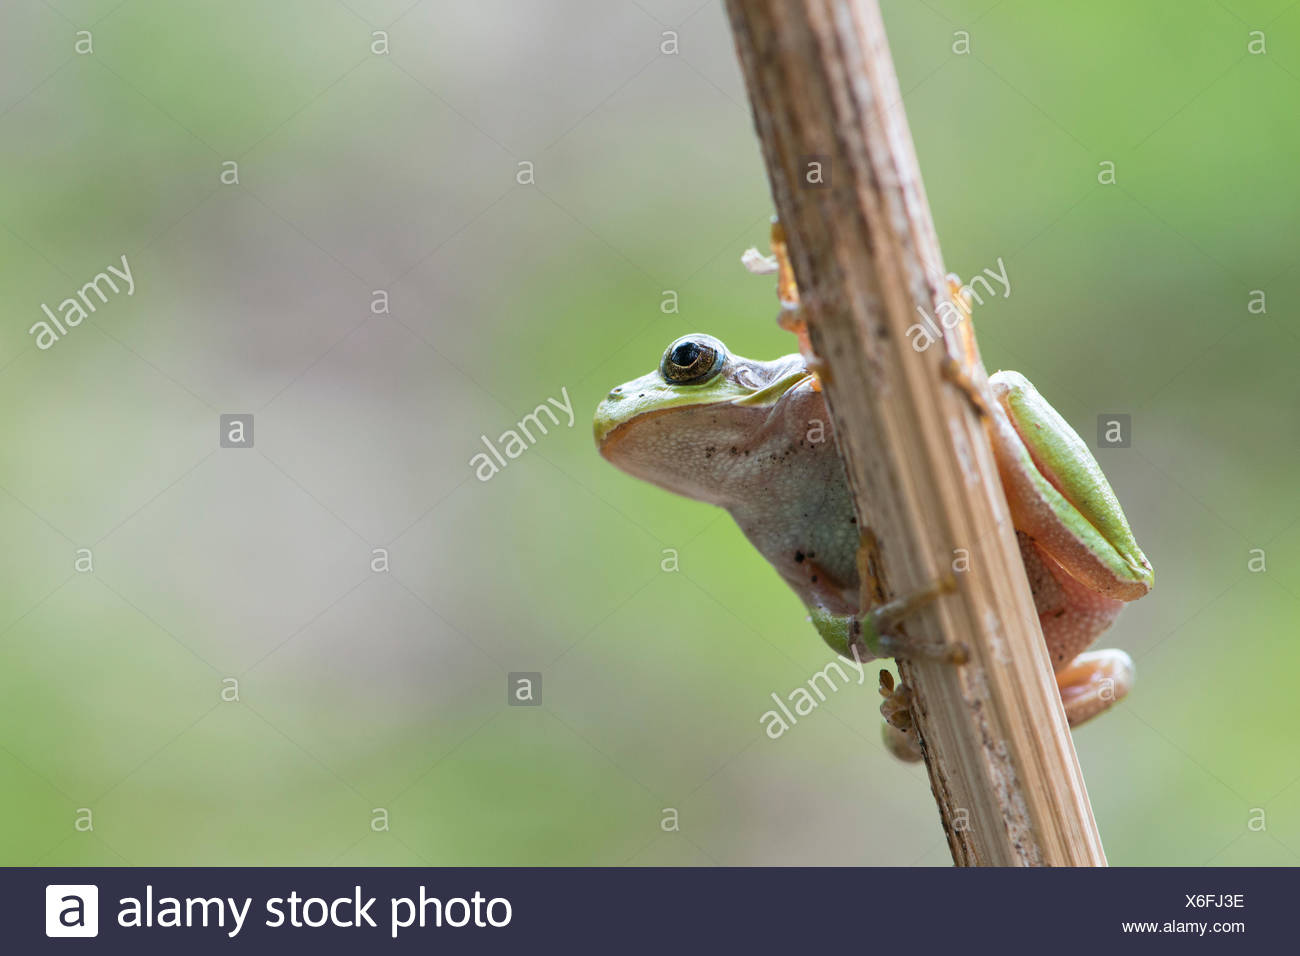 Tree frog (Hyla arborea) on stalk, Rhineland-Palatinate, Germany - Stock Image